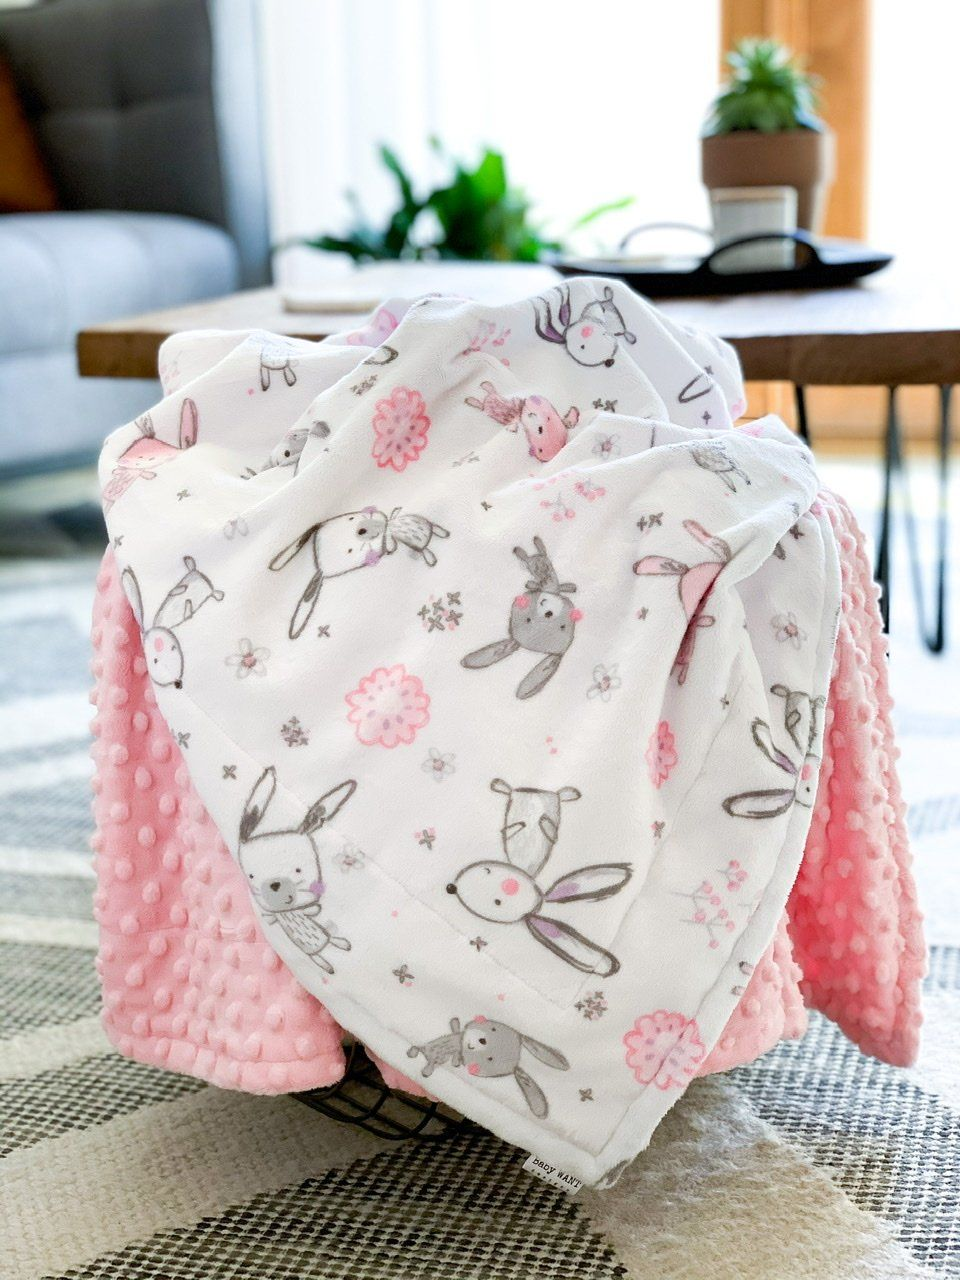 Blankets - Bunny Hop - Soft Youth Minky Blanket